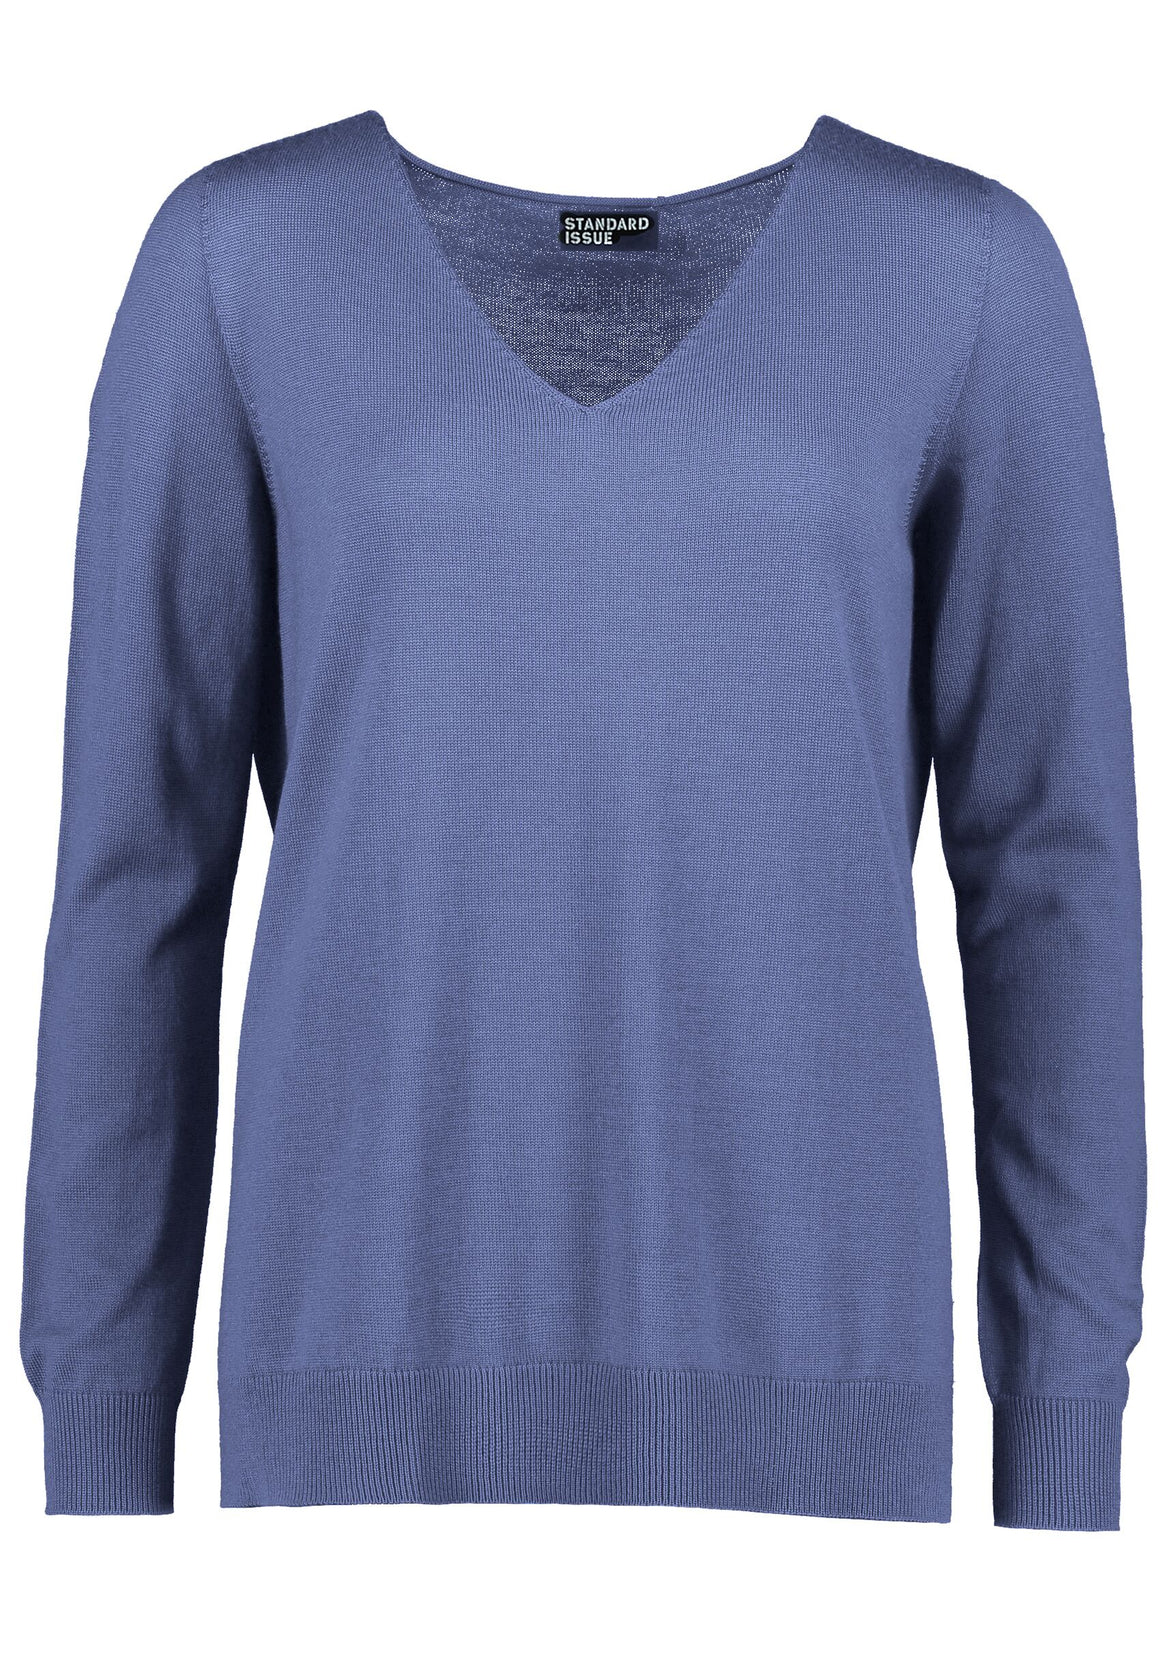 Standard Issue V Neck Slouchy | Shop Online at Wallace & Gibbs NZ